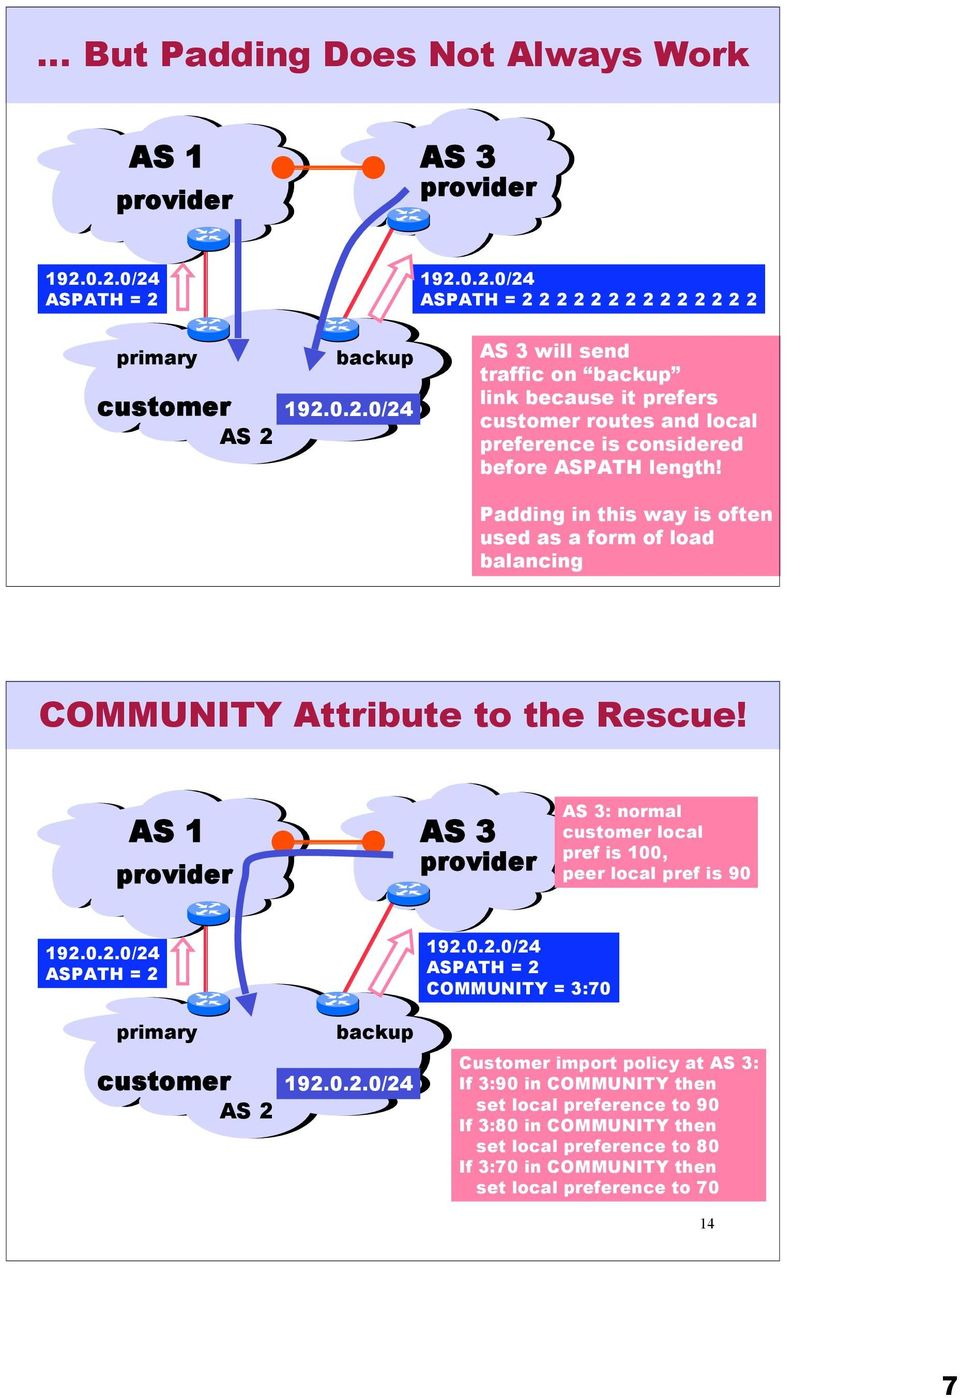 Padding in this way is often used as a form of load 3 balancing COMMUNITY Attribute to the Rescue! AS 3 AS 3: normal local pref is 00